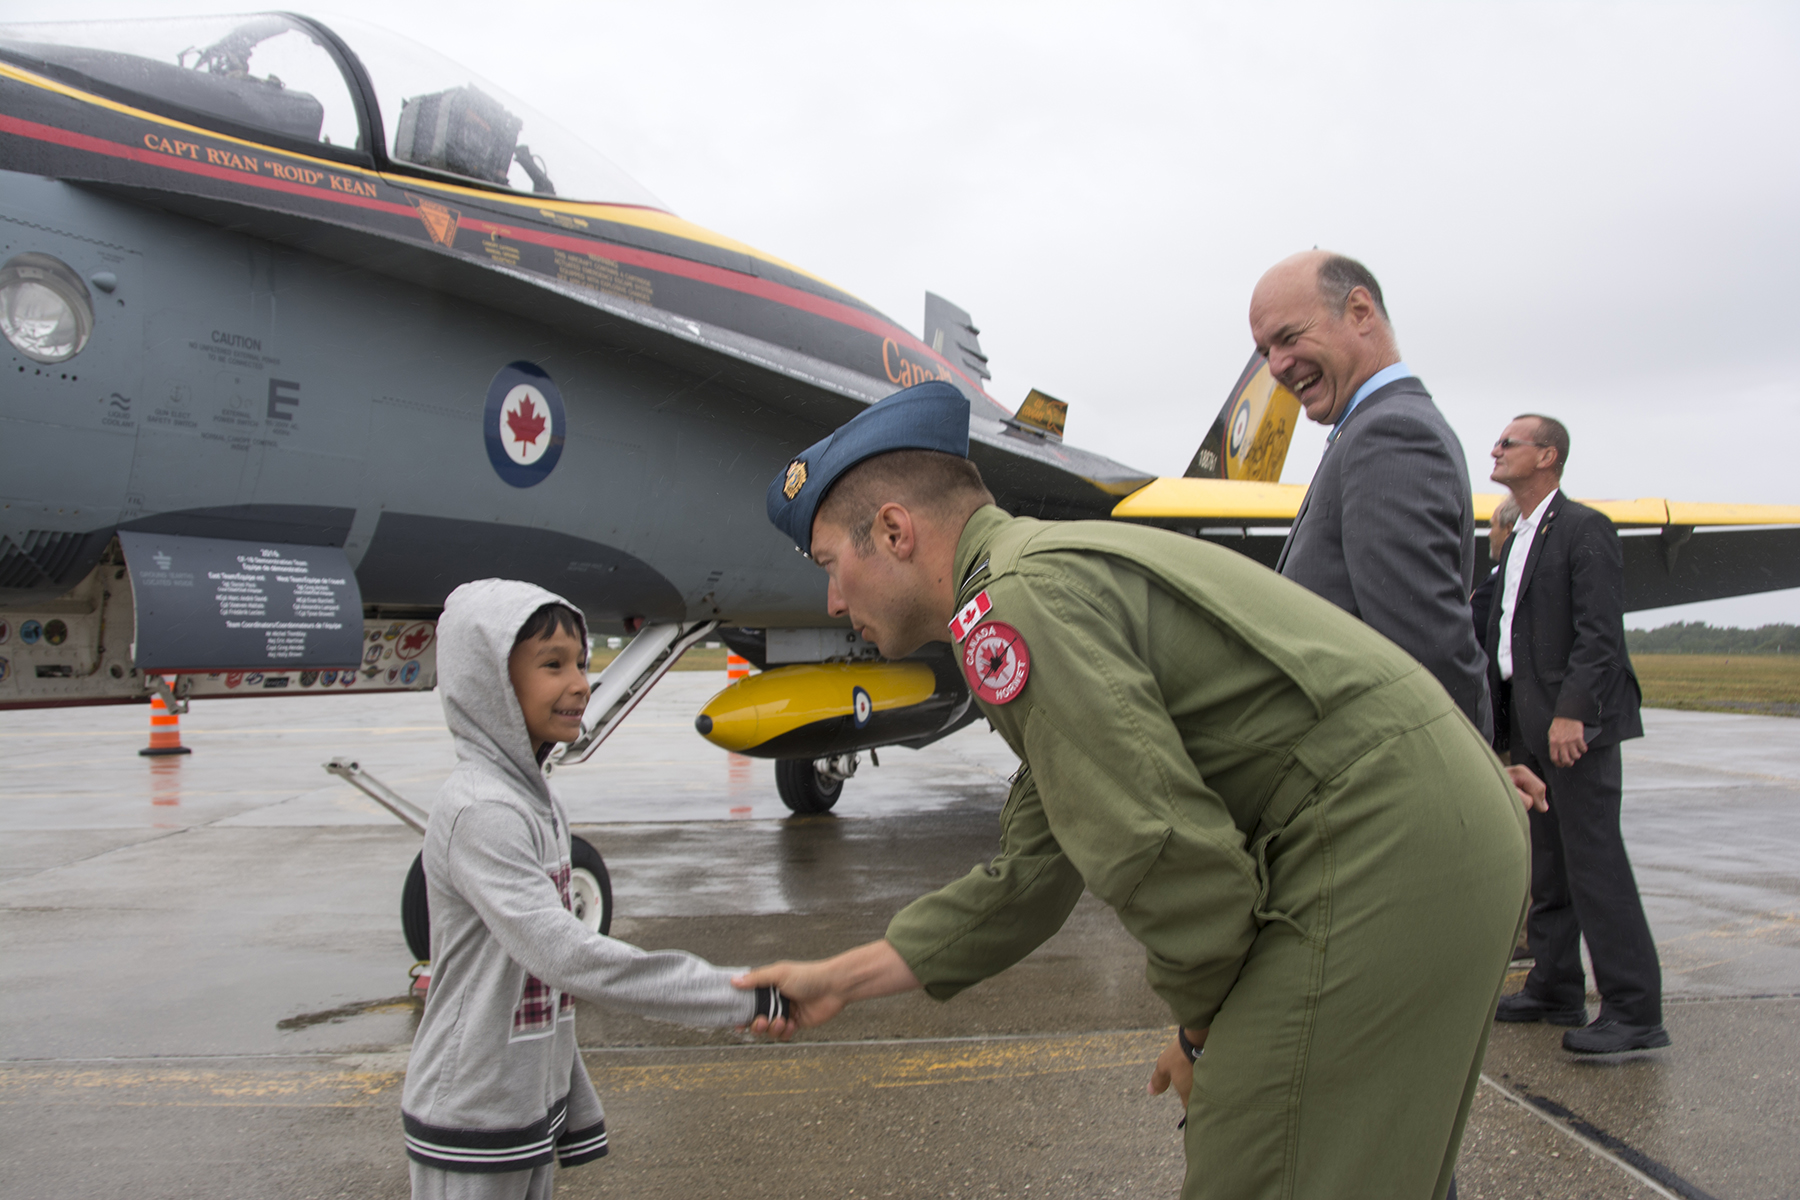 Captain Ryan Kean, pilot of the 2016 Demonstration CF-188 Hornet fighter, meets a seemingly star-struck attendee of the ceremony marking the 75th anniversary of the standing up of No. 9 Bombing and Gunnery School in Mont Joli, Québec. PHOTO: Jean-Pierre Bonin